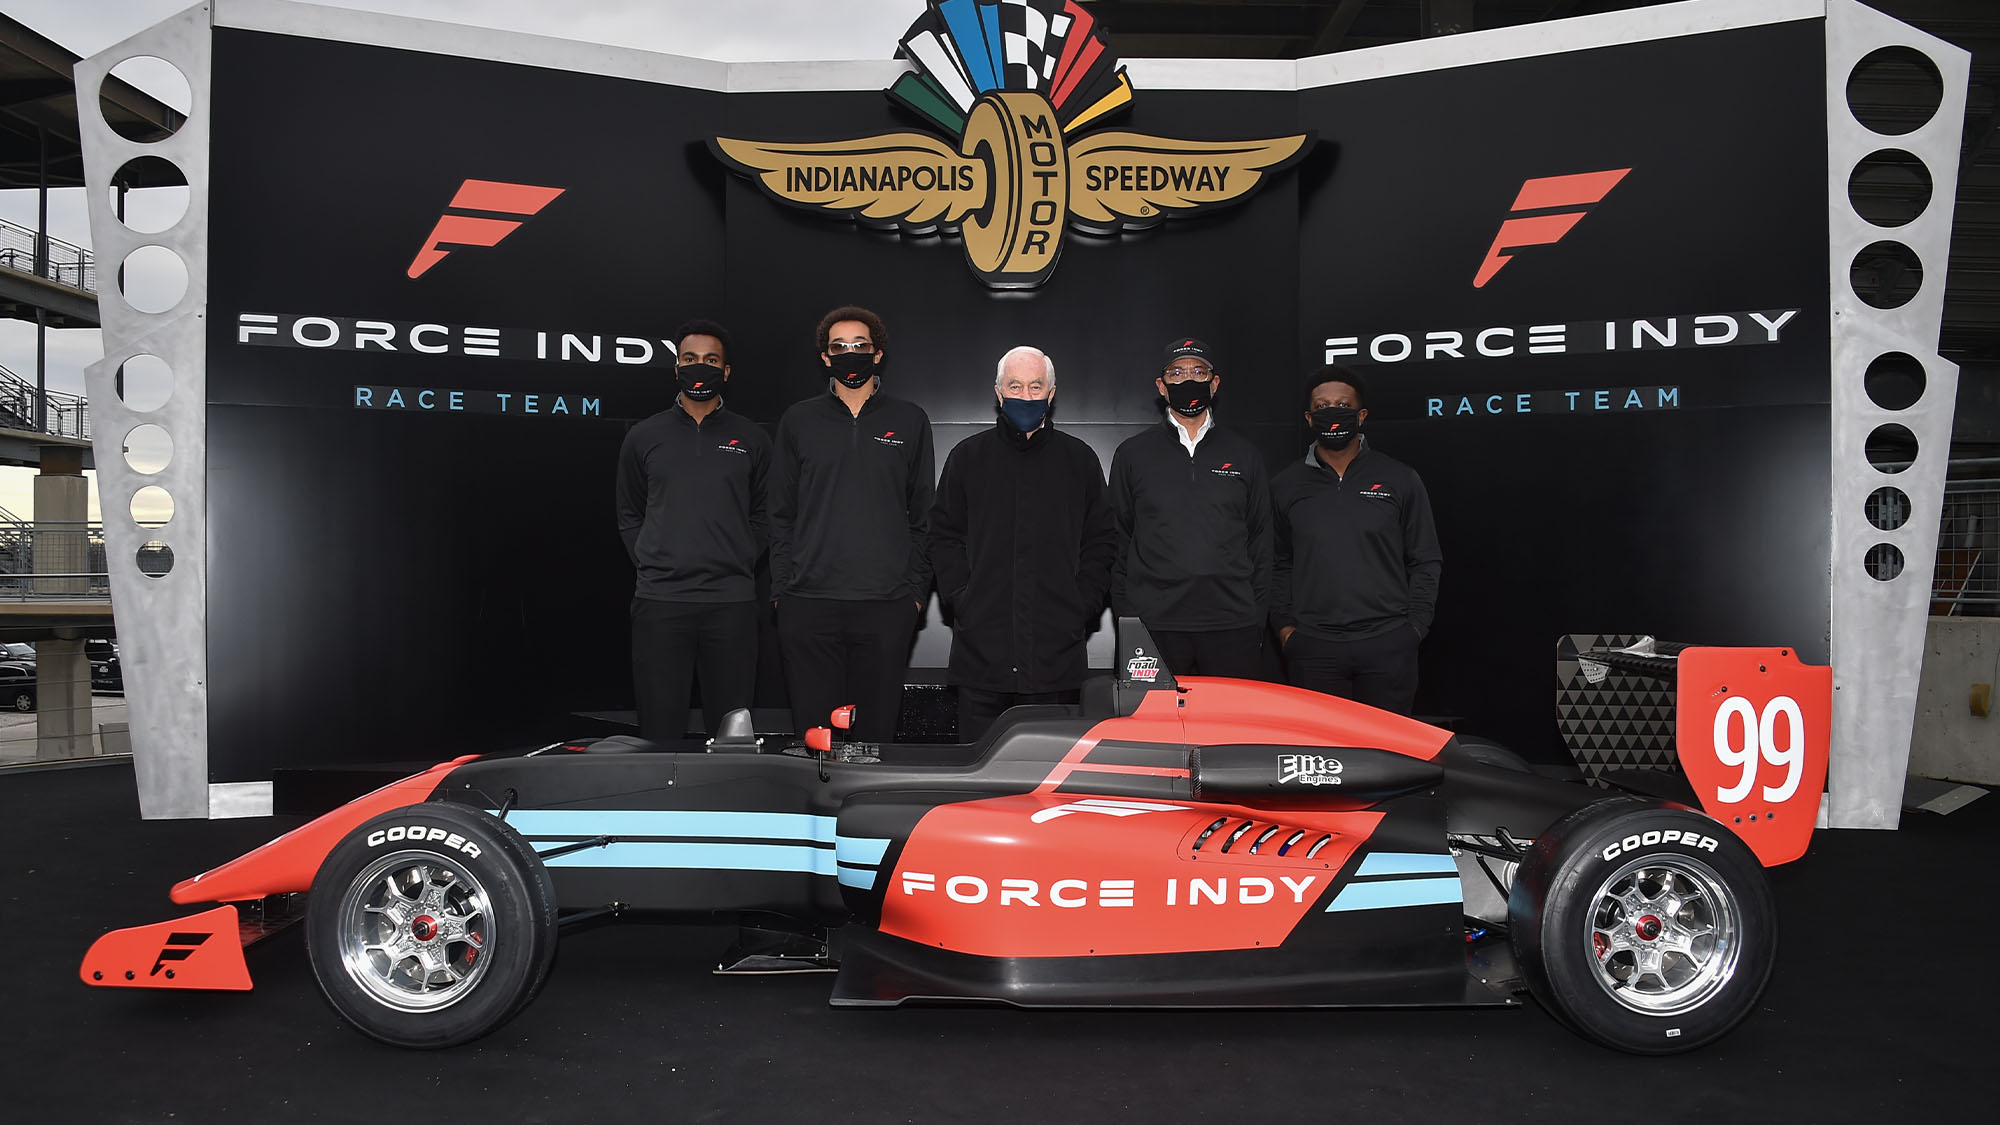 Force Indy